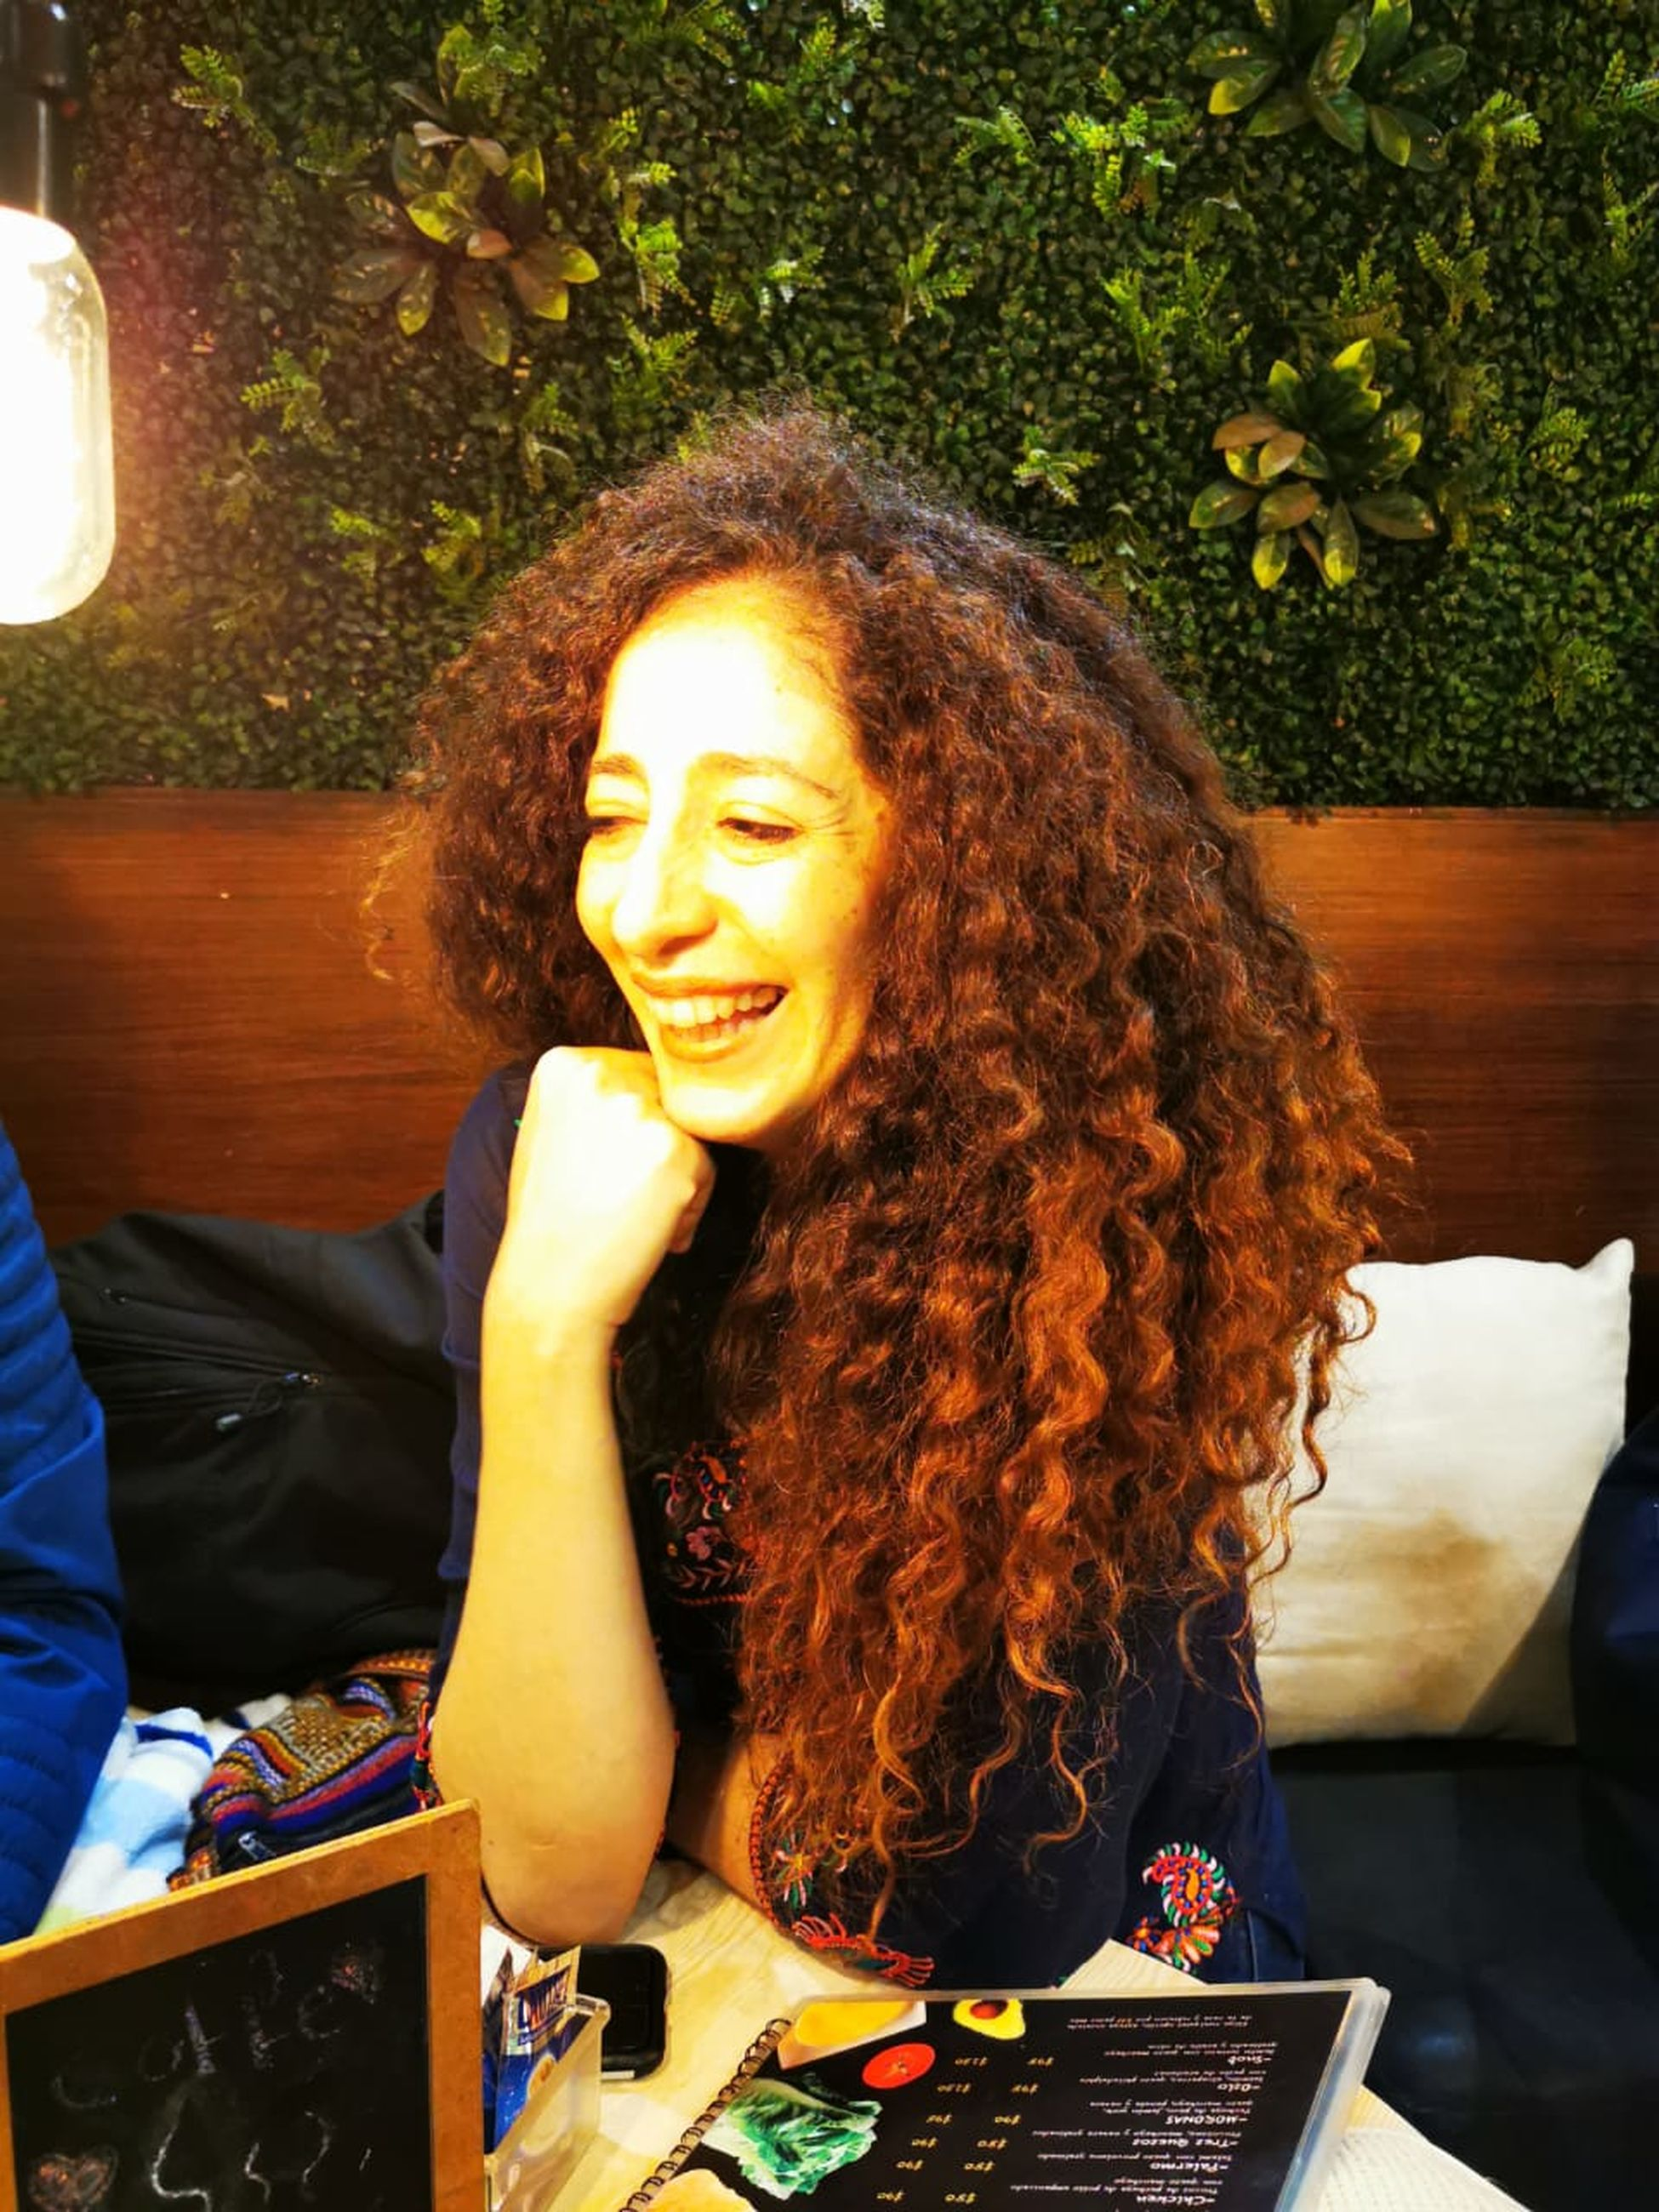 smiling, happiness, one person, young adult, sitting, women, emotion, young women, real people, hair, leisure activity, curly hair, hairstyle, adult, front view, portrait, lifestyles, redhead, casual clothing, cheerful, beautiful woman